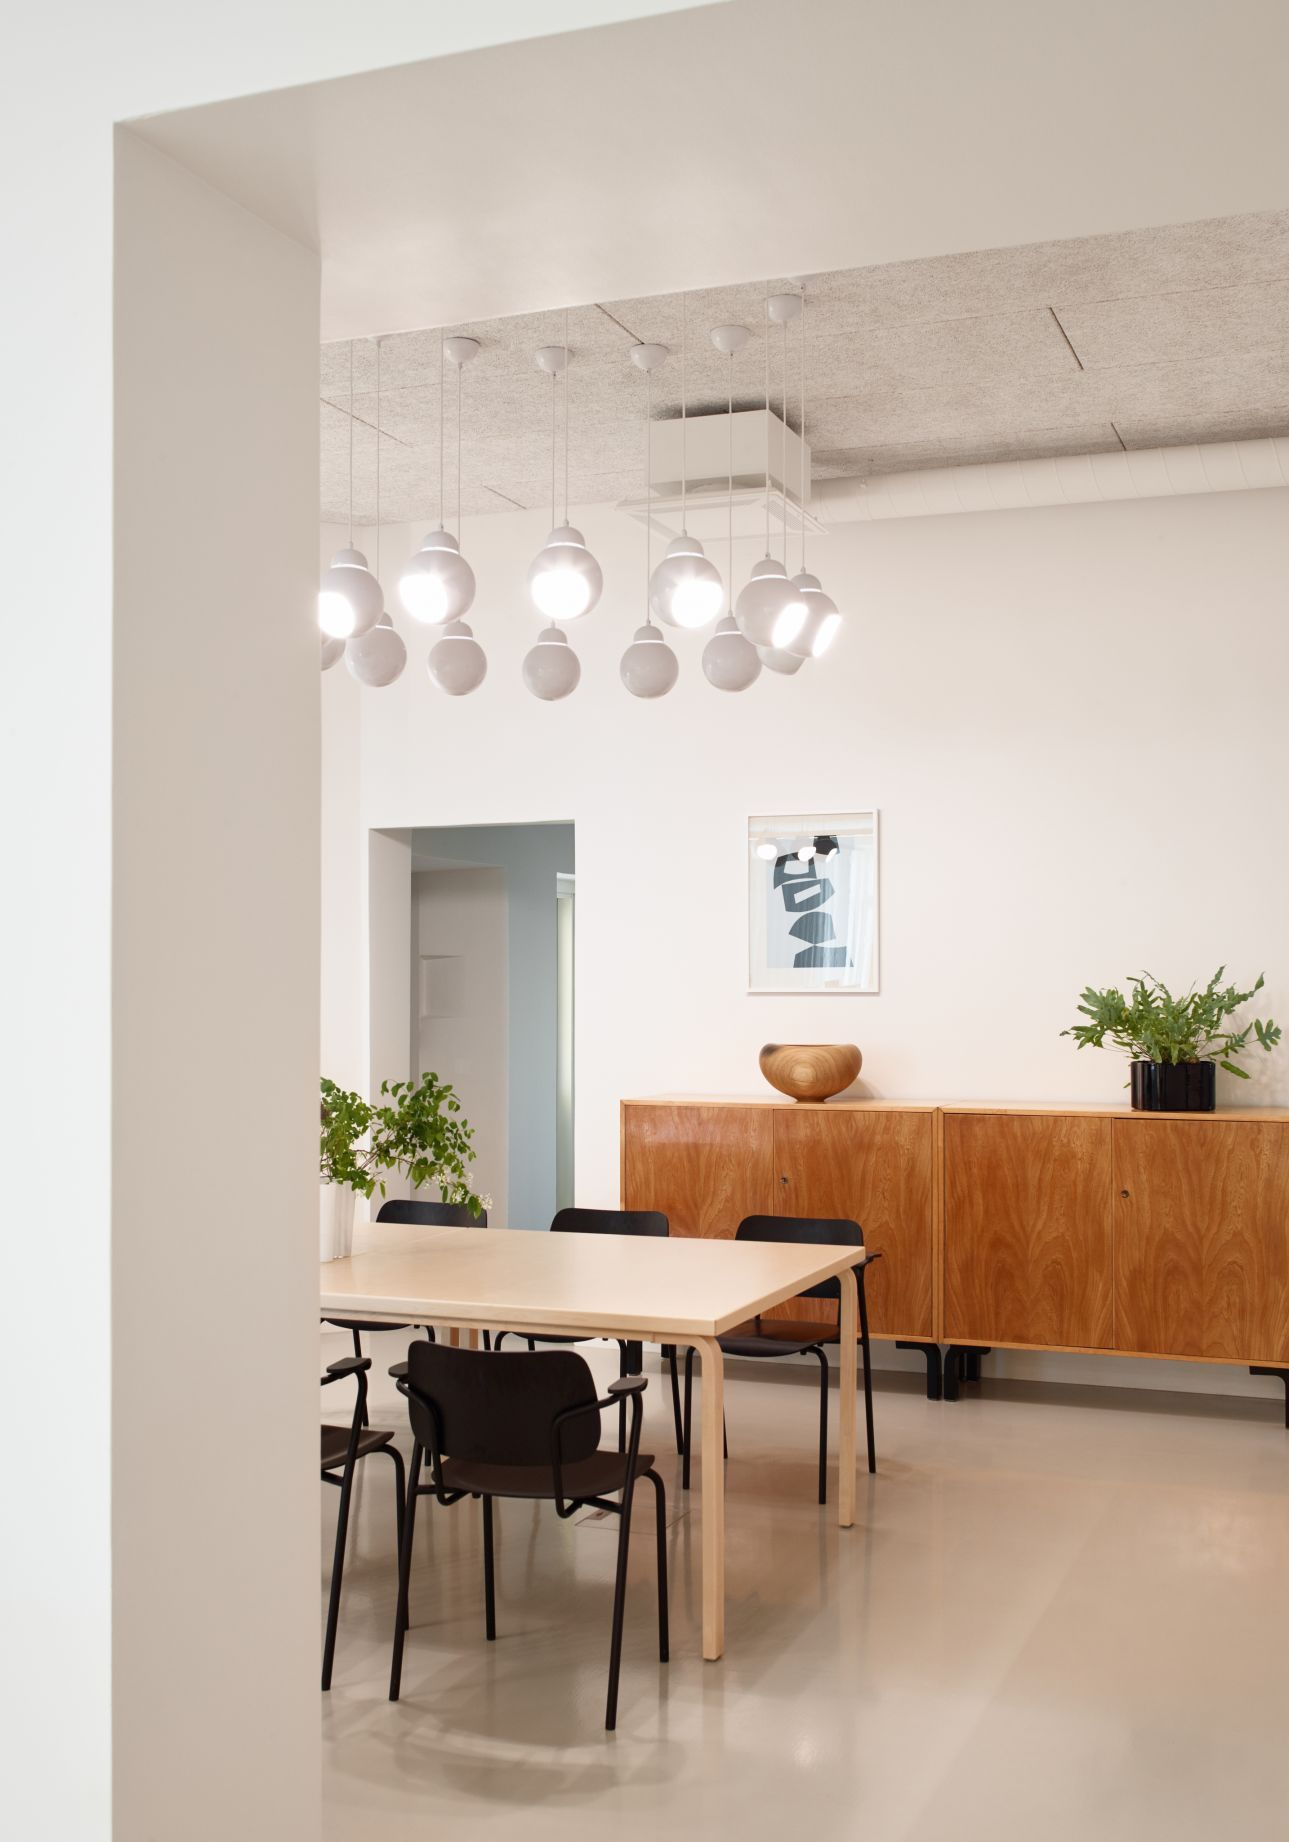 Mitte jahrhundert moderne esszimmer dekor new artek oy office in helsinki  a space for people and products